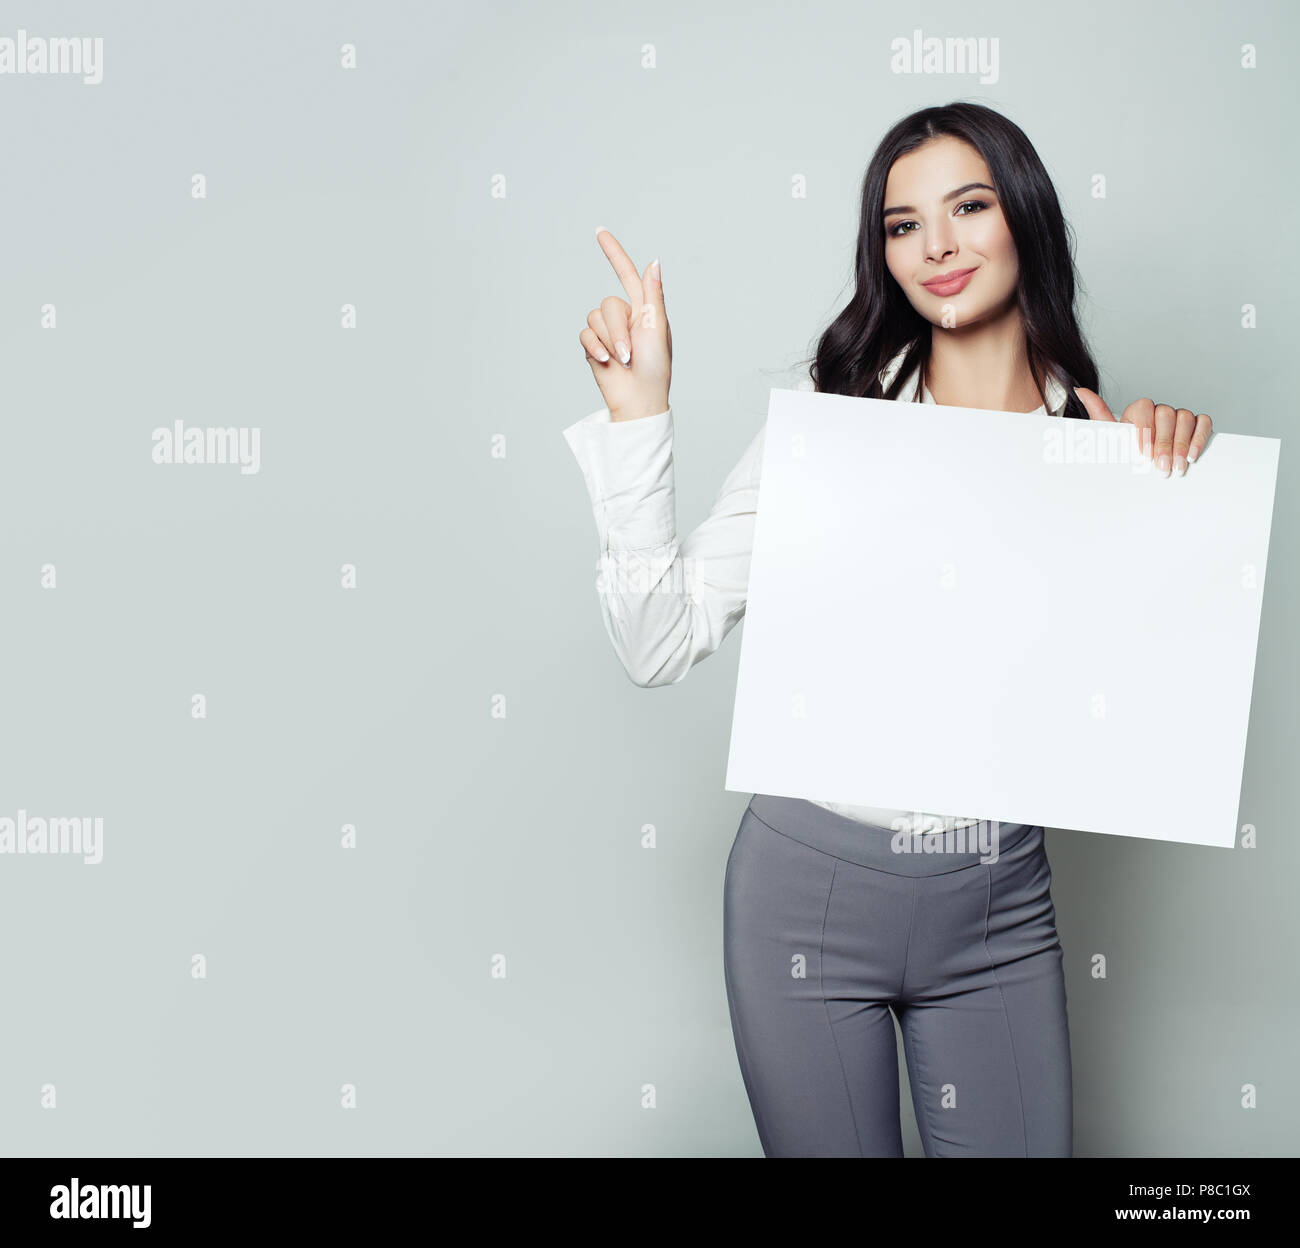 Cute Young Woman Student With White Blank Paper Banner Background With Copy Space Pointing Her Finger Business Startup Or Education Concept Stock Photo Alamy